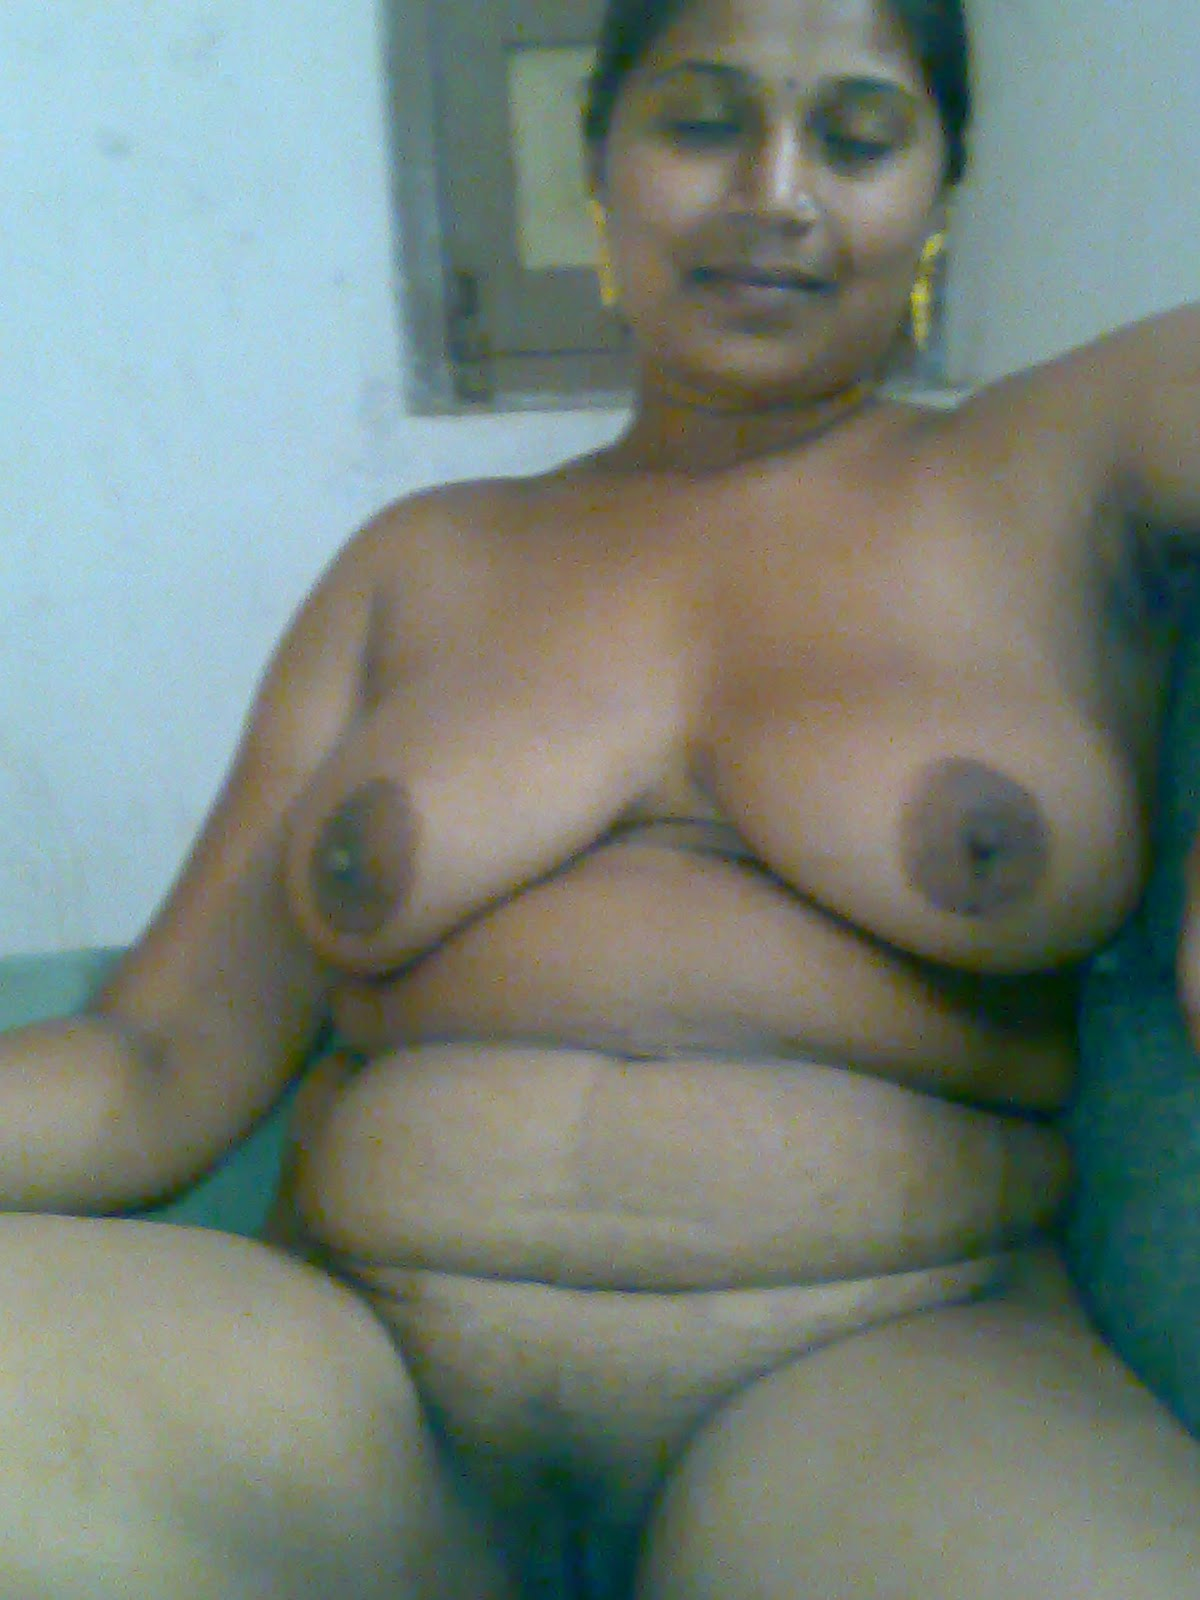 Indian ladies nudes. your